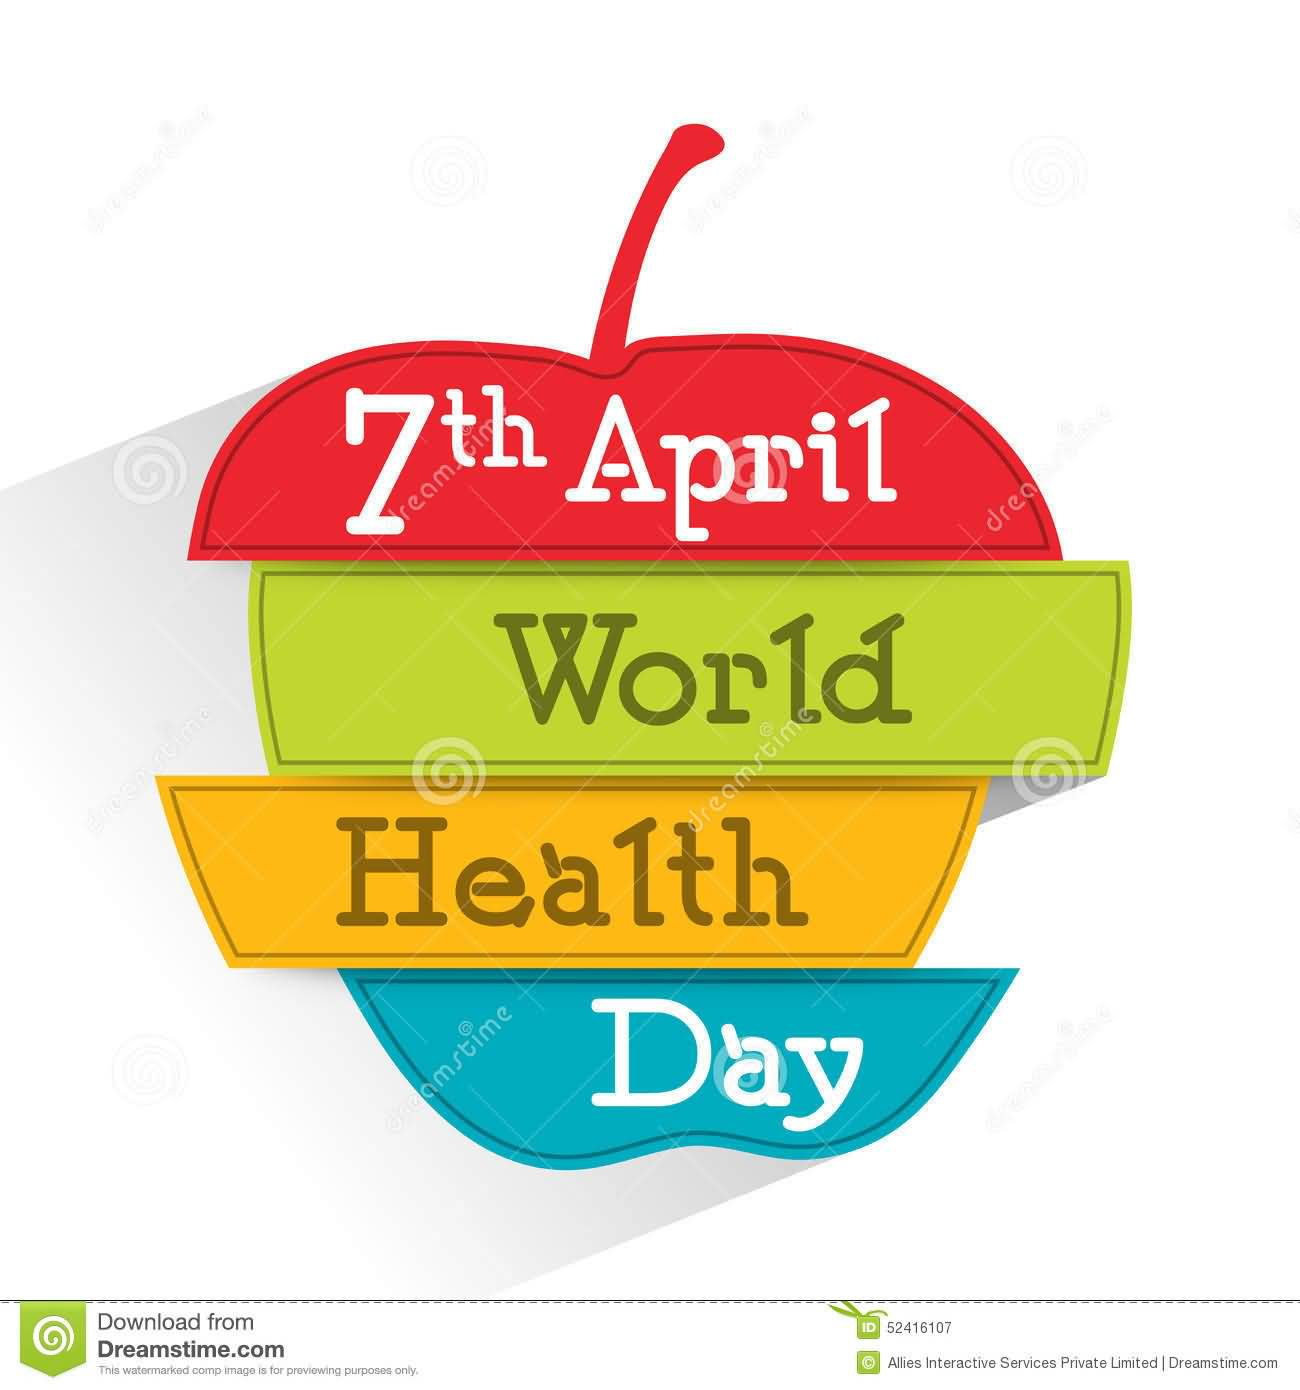 world health day World health day is a health awareness day celebrated each year on the 7th of april it is sponsored by the world health organization (who).